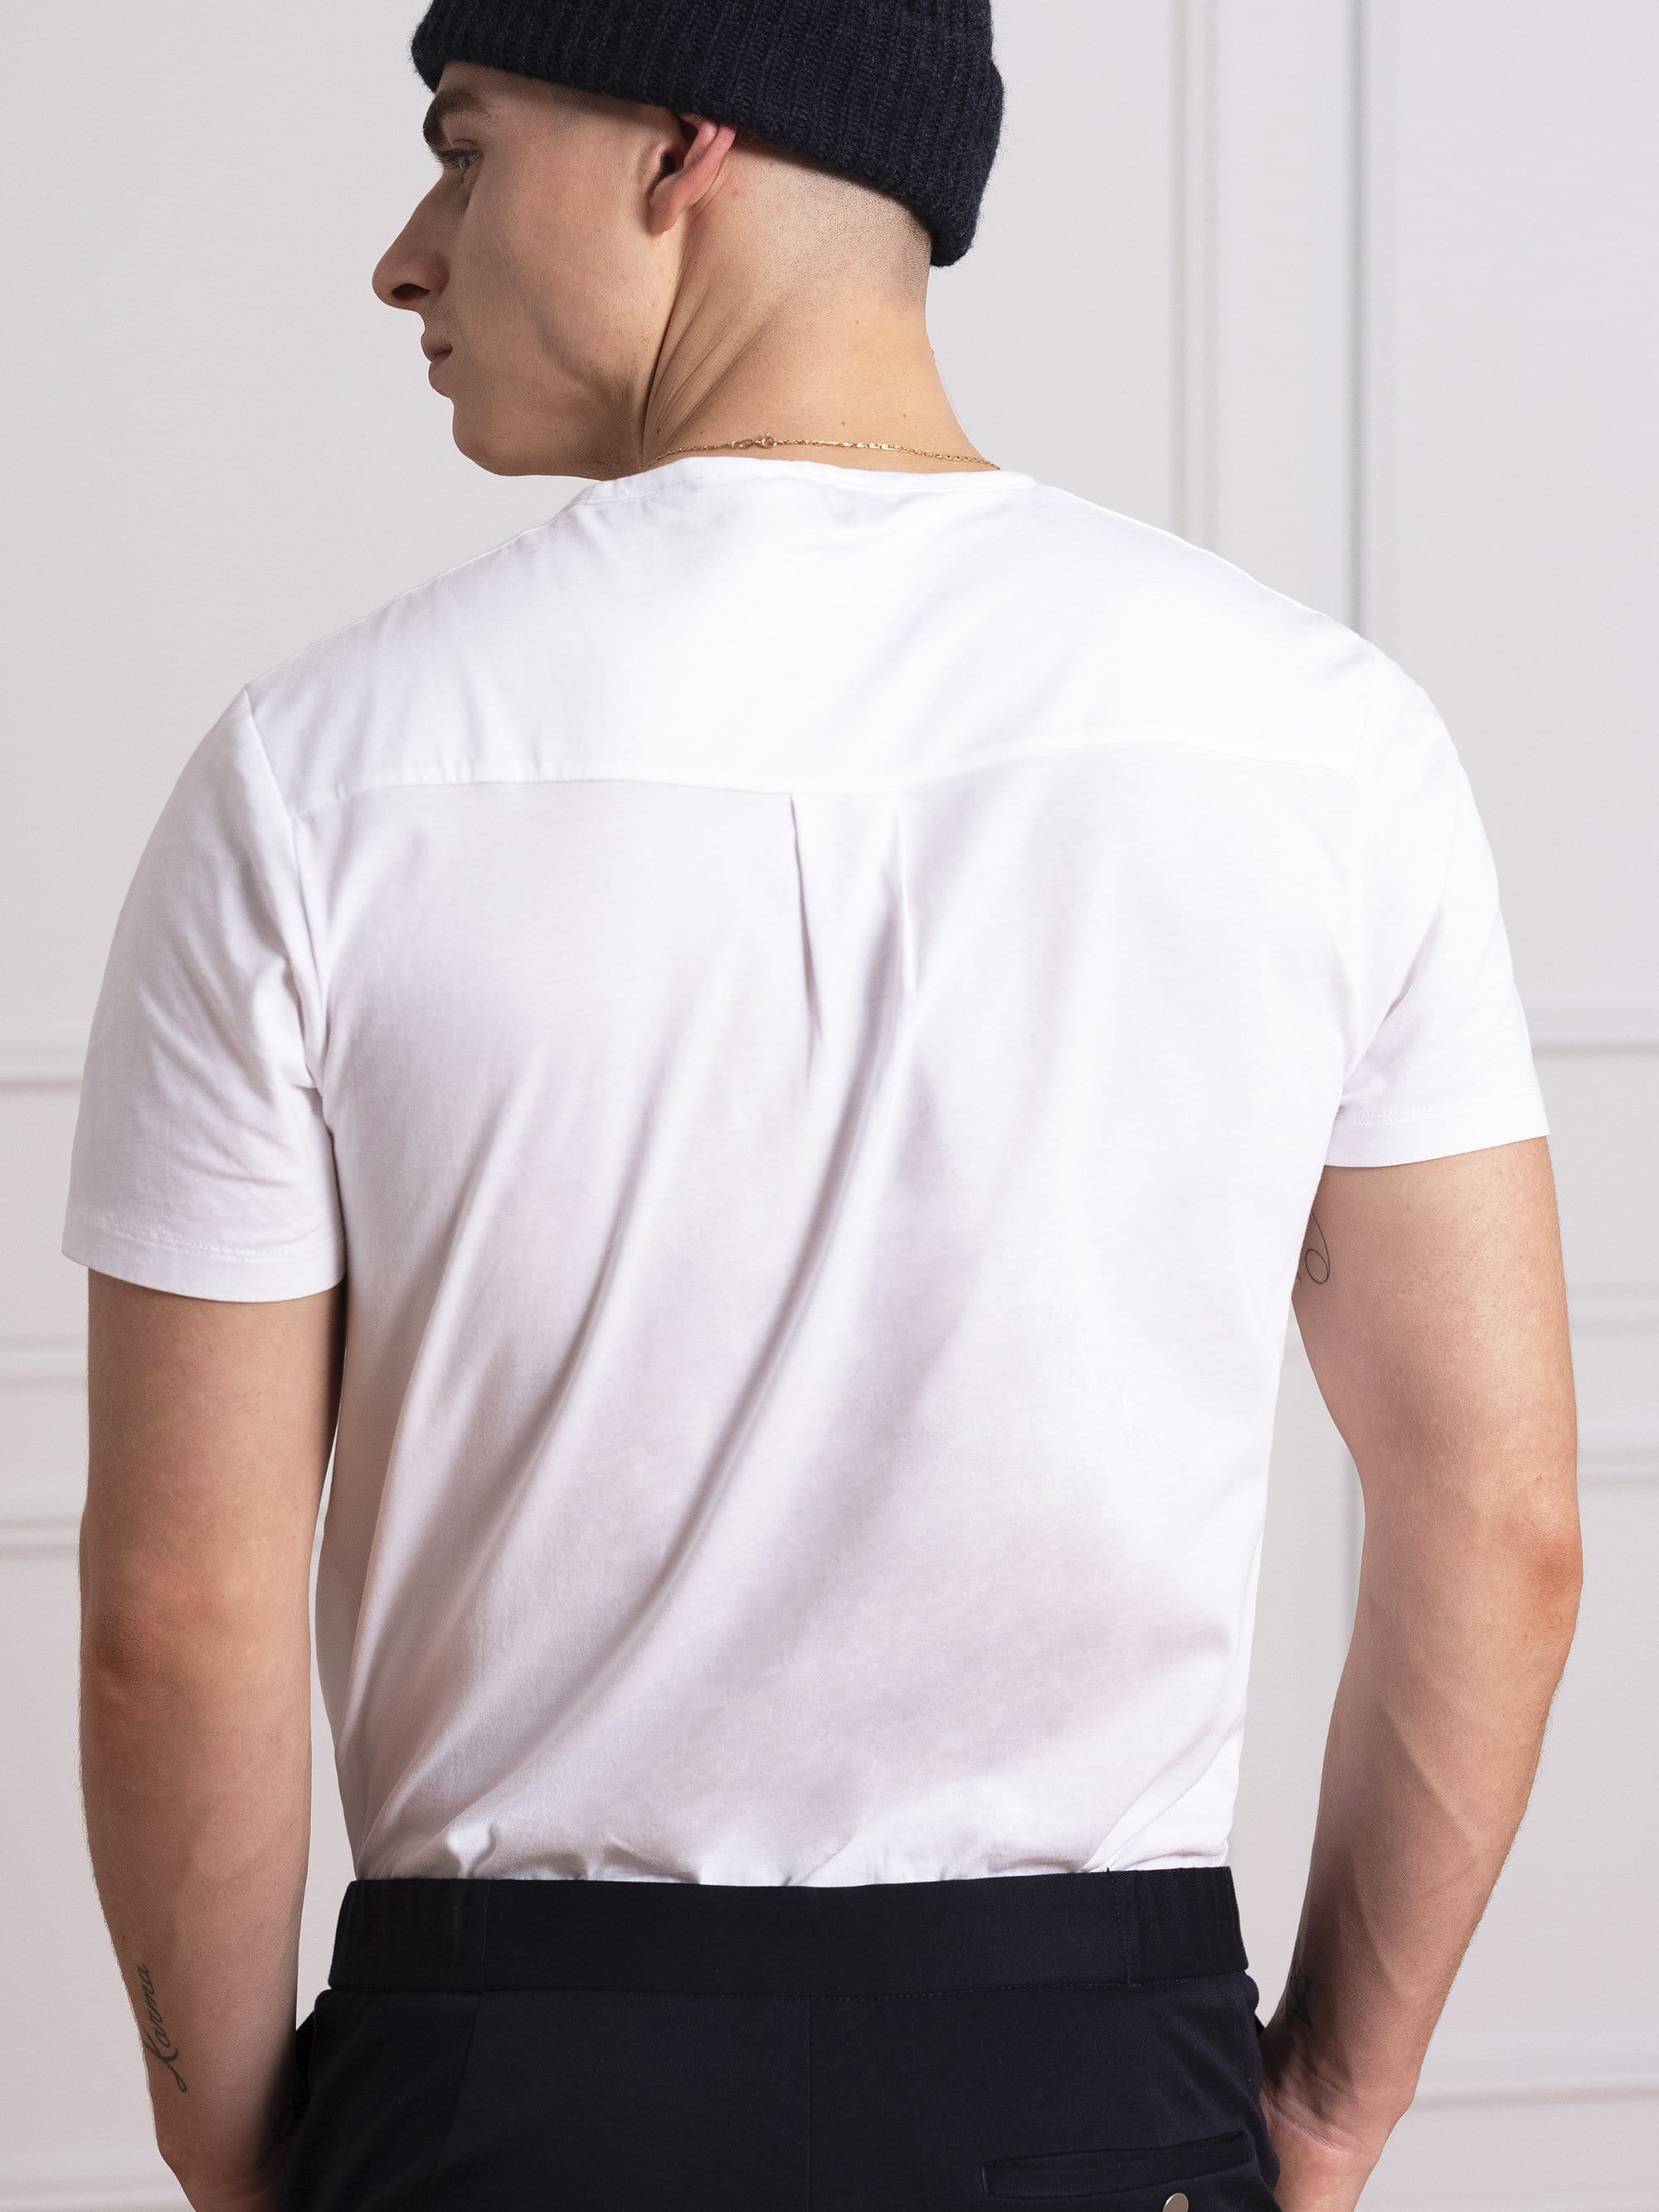 The Tailored Tee Organic || White | Organic Cotton